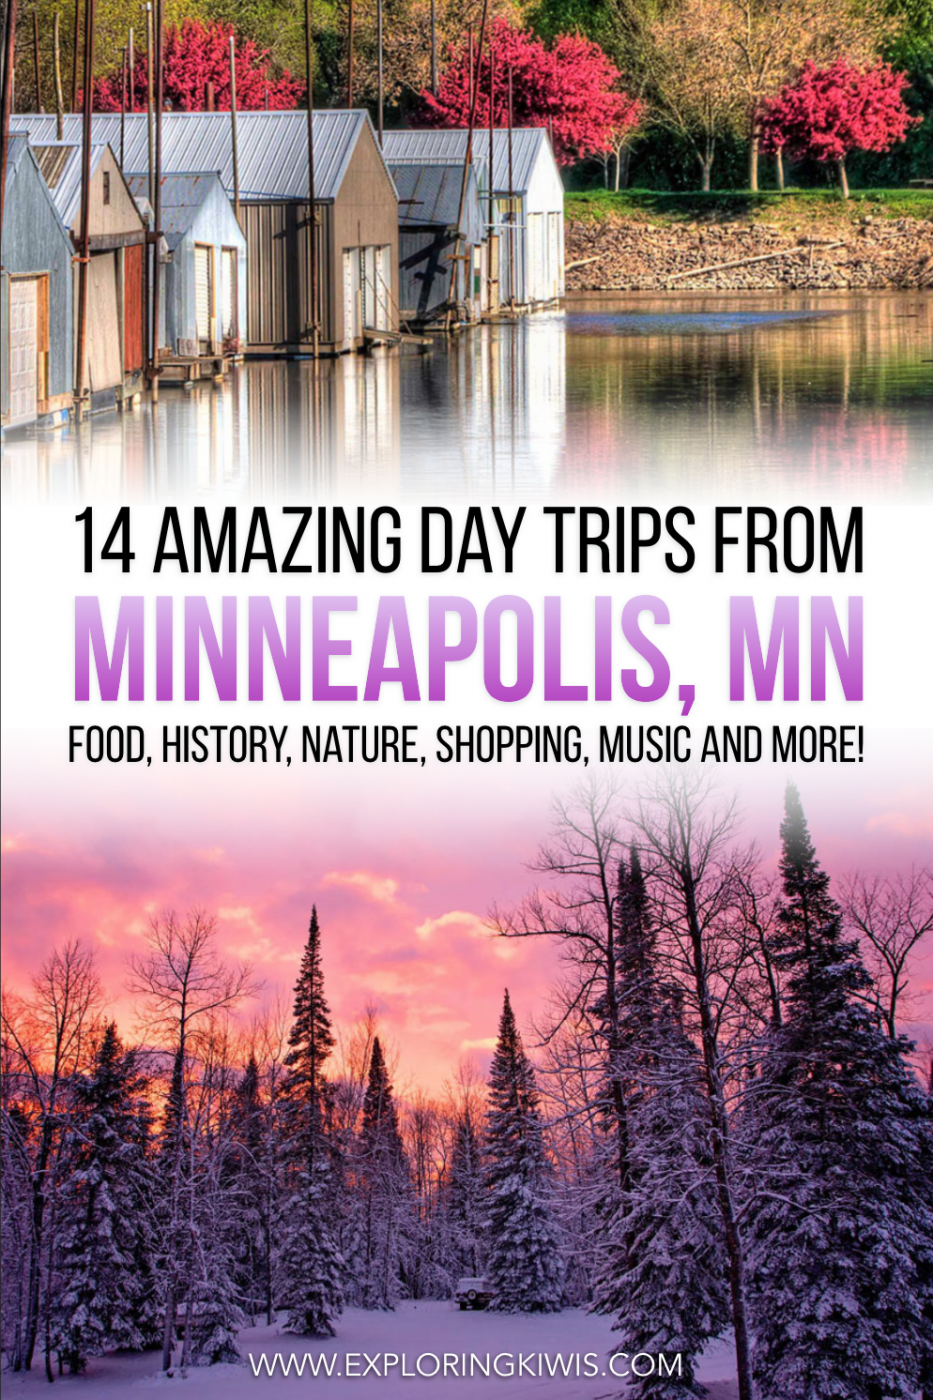 If you\'re in Minneapolis, MN, pack up the car and take a road trip to one of these 14 spots! Gorgeous towns and unique spots - they\'re all within two hours of the city.